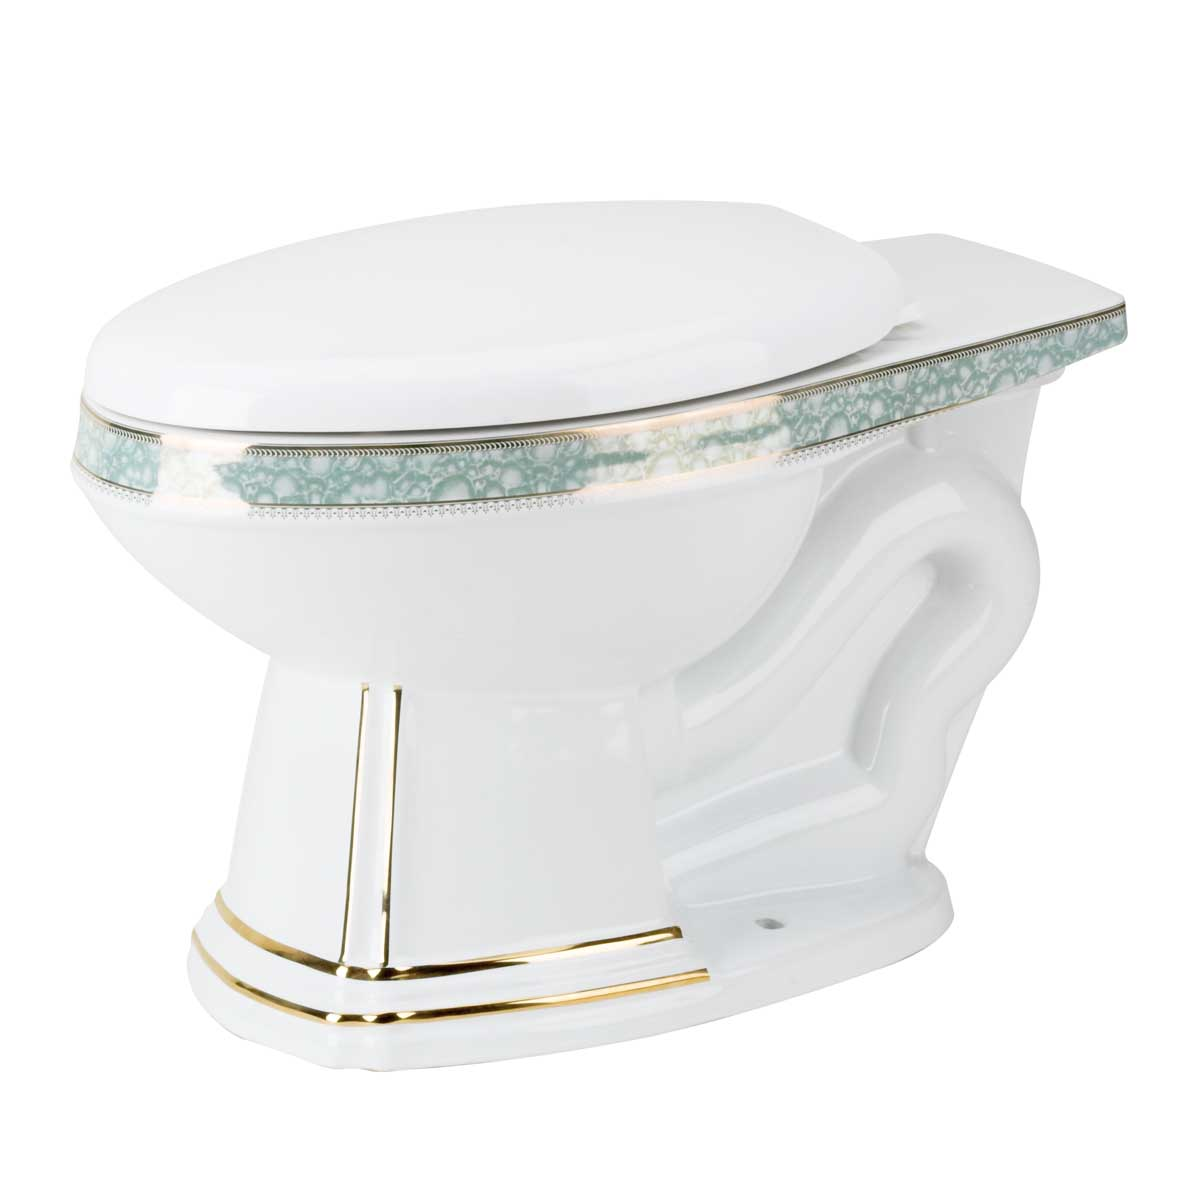 Toilet Part White/Gold/Blue Sheffield Deluxe Bowl Only | Renovator's Supply